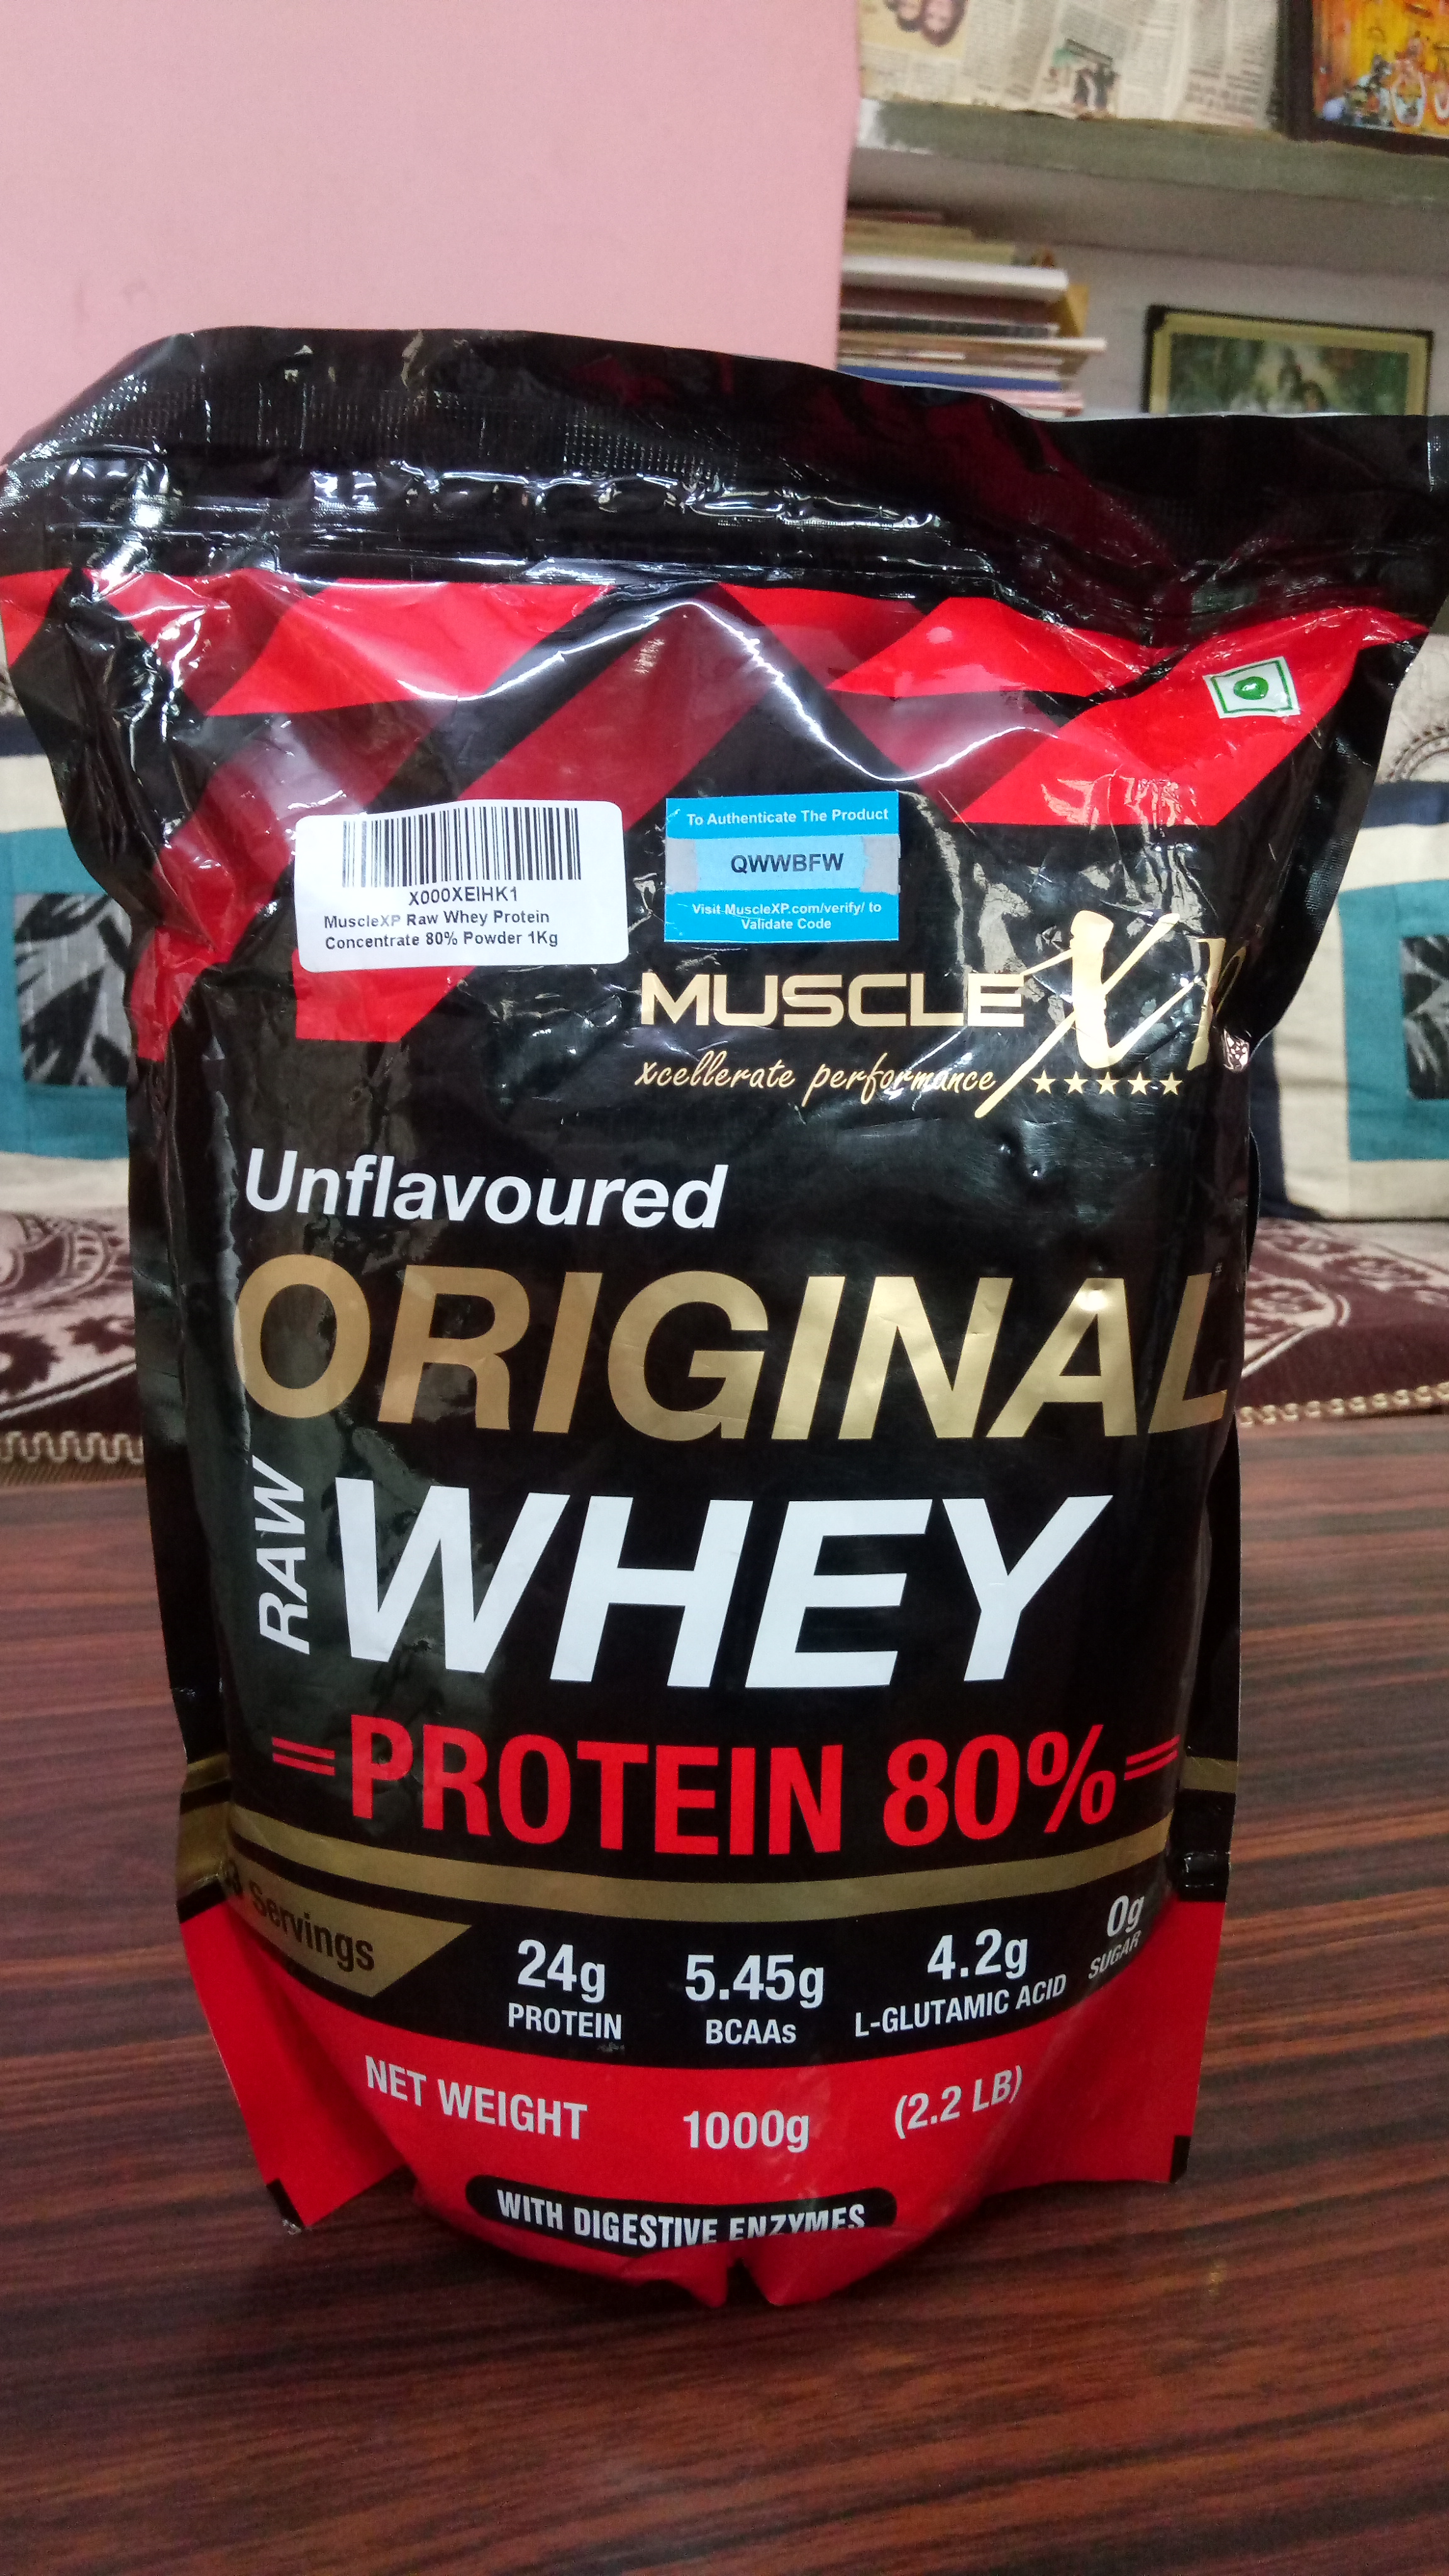 MuscleXP Raw Whey Protein 80% Powder Unflavoured -Awesome Whey Protein-By deepaksoni